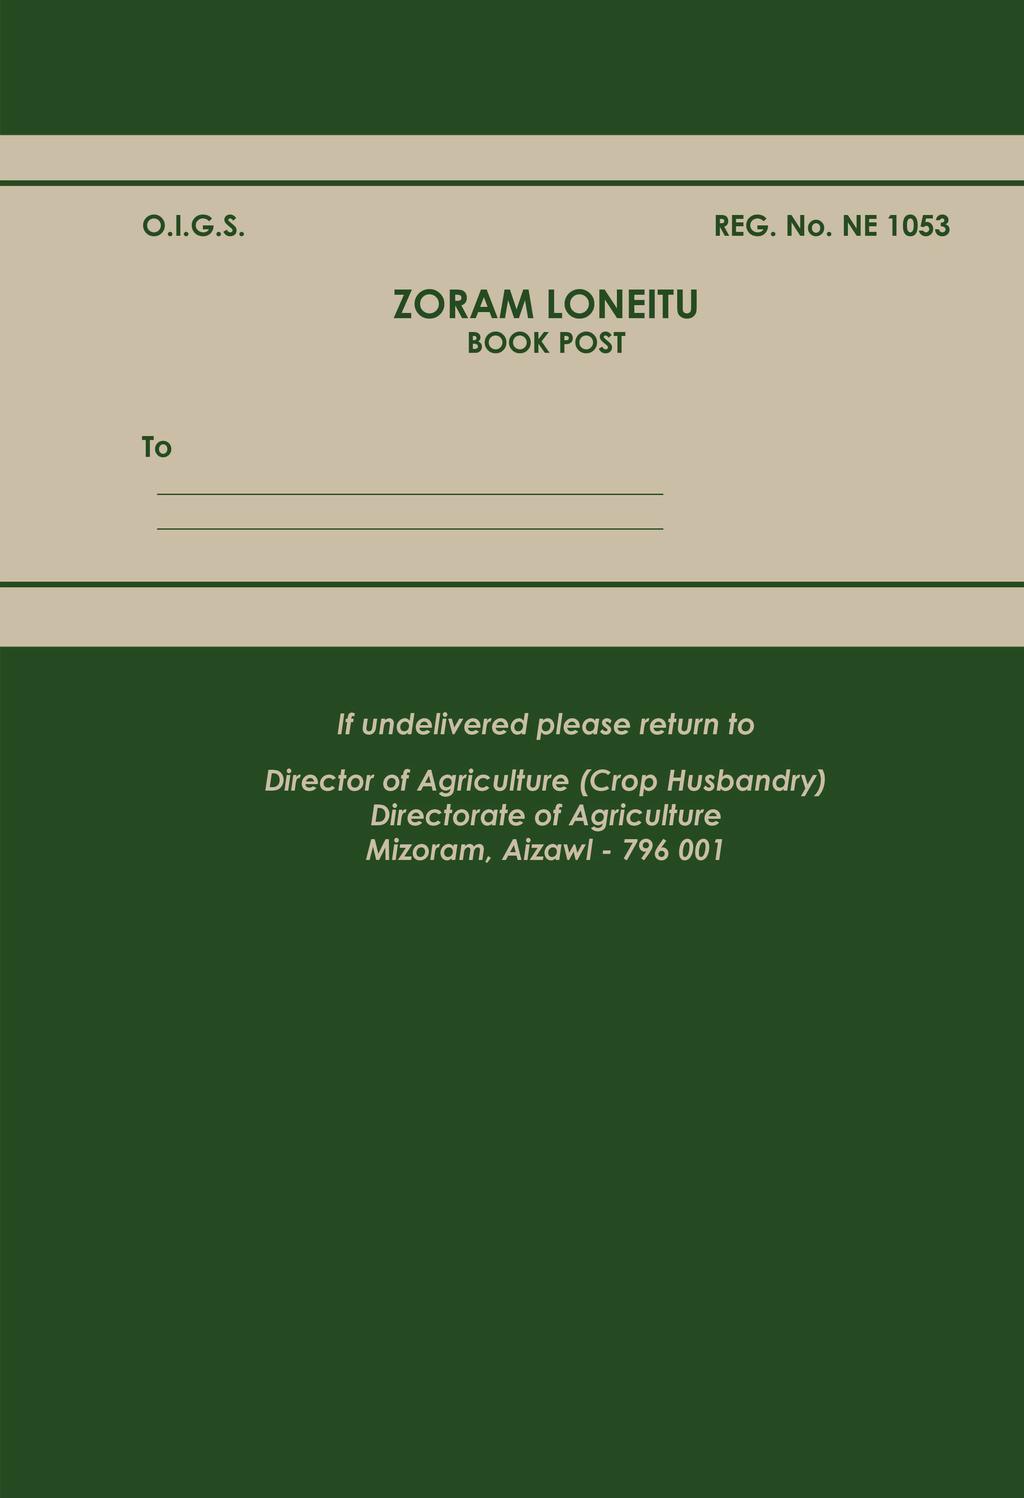 ZORAM LONEITU Volume 59 No  4 : January - June, General